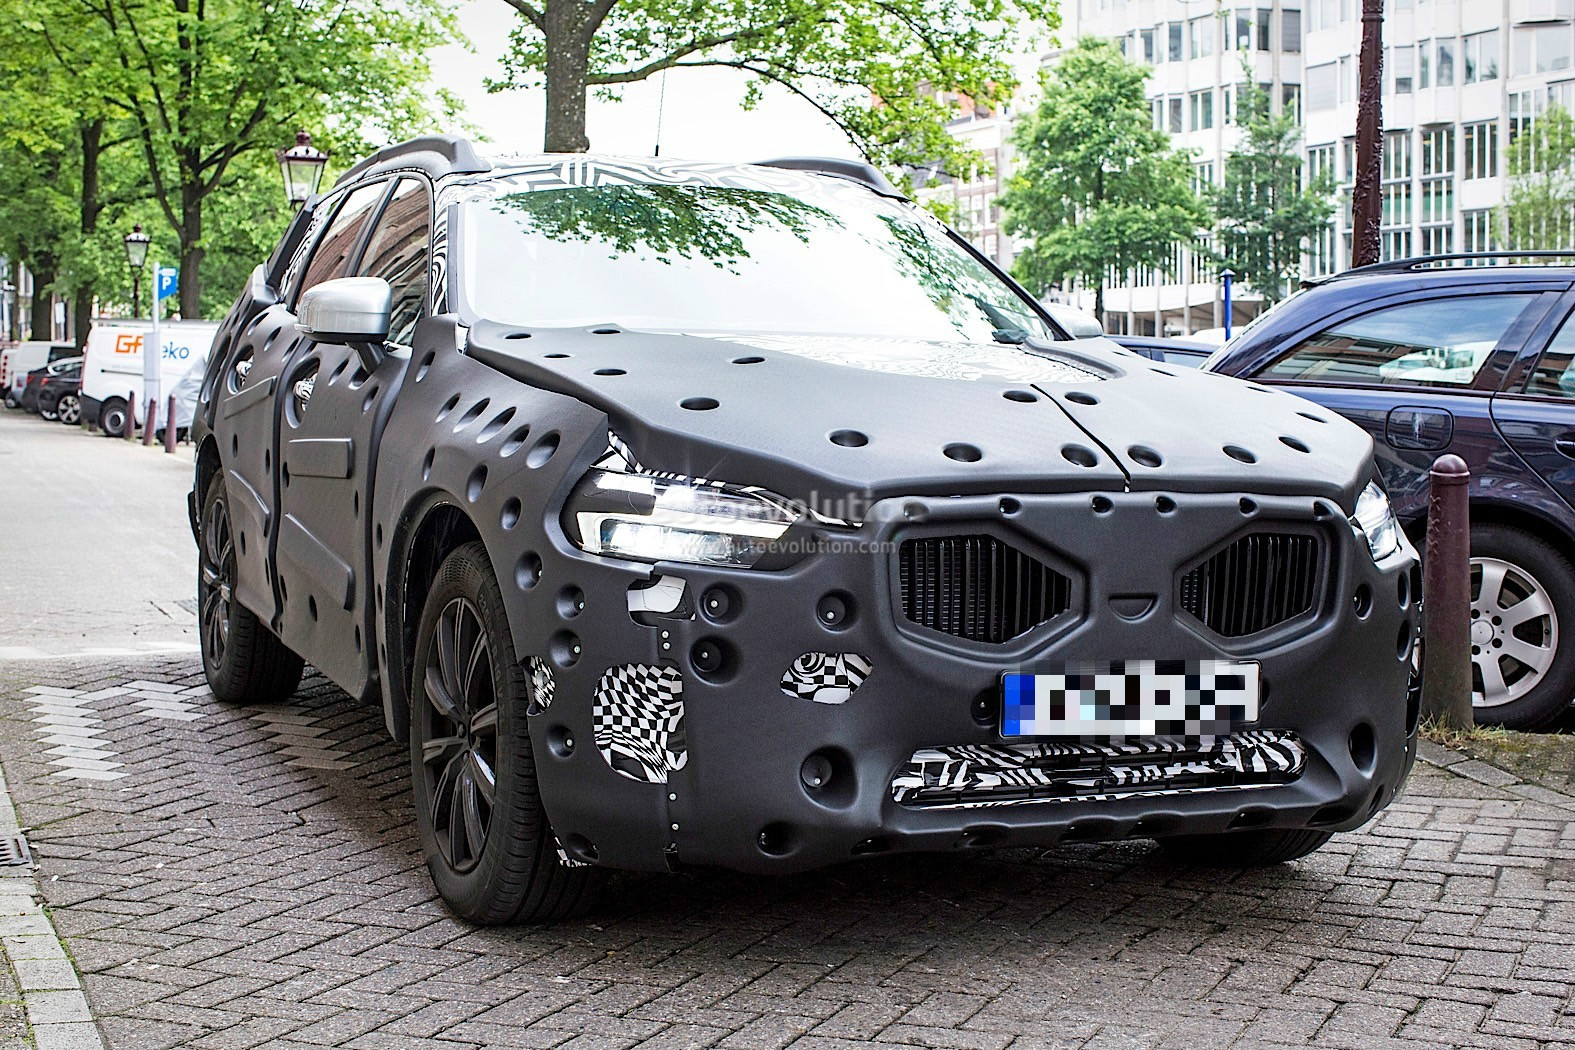 2018 Volvo XC60 Spied For The First Time in Amsterdam - autoevolution